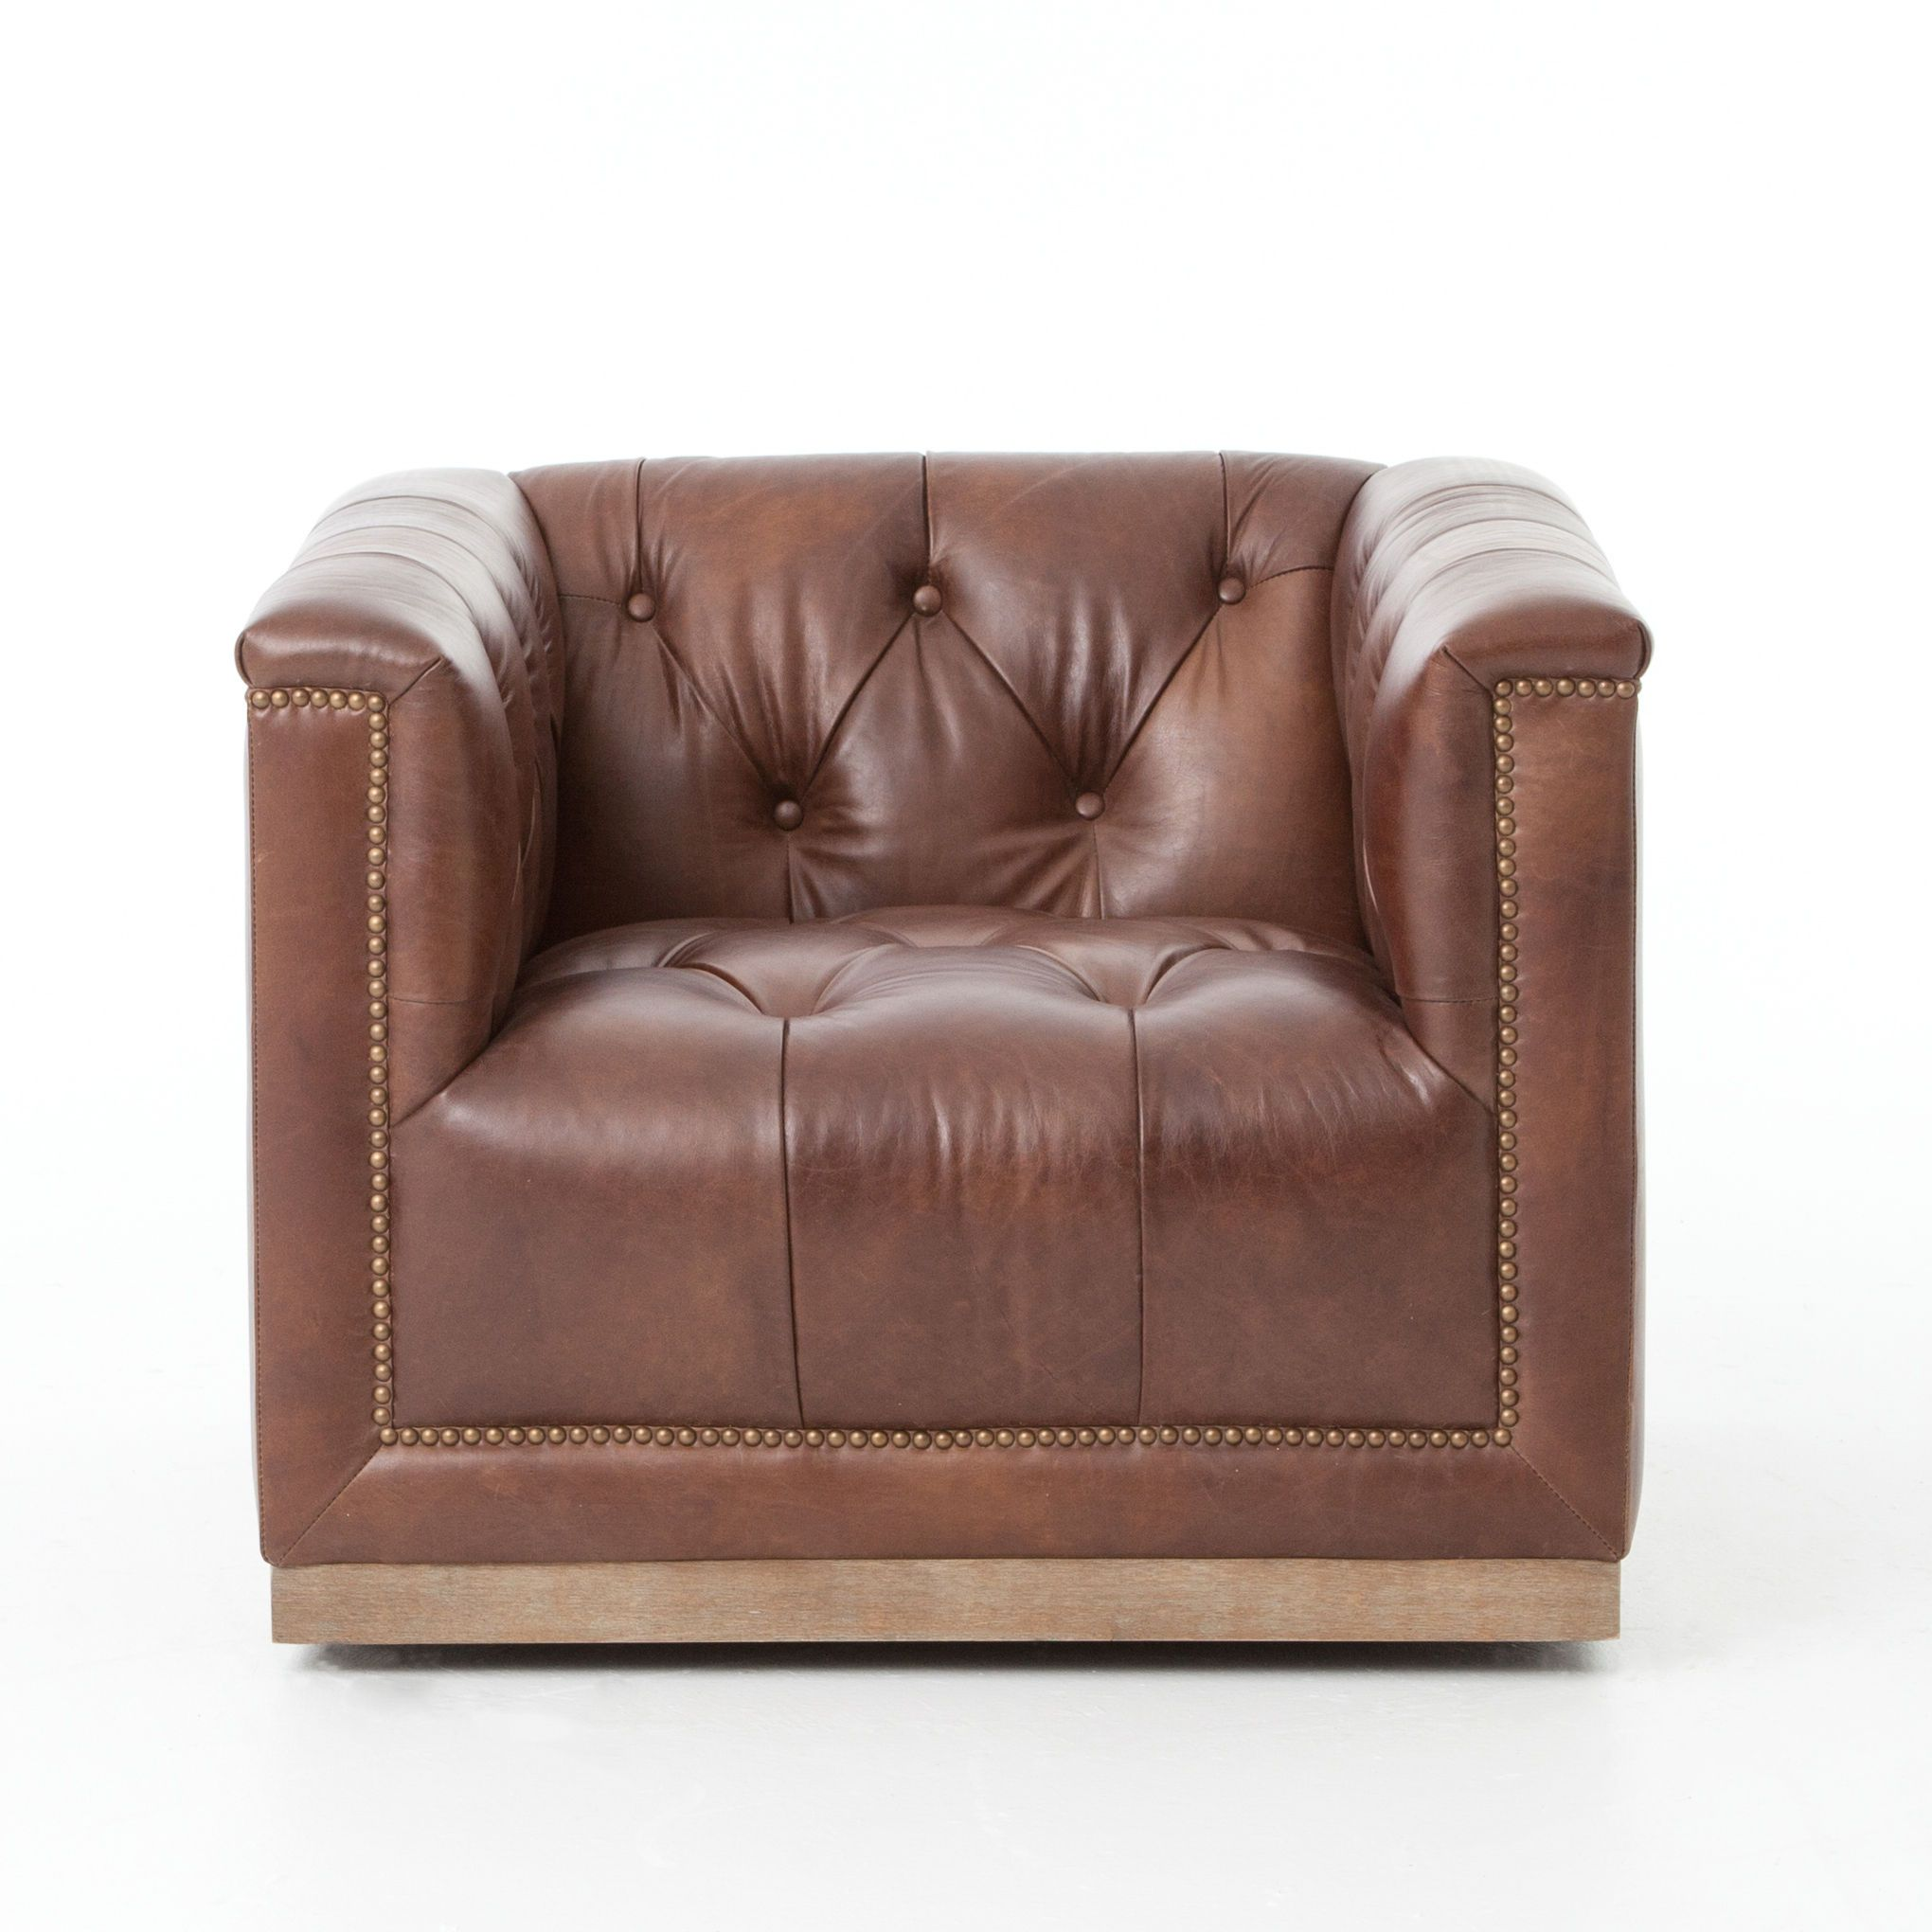 Leather Swivel Chairs For Living Room Living Room Maxx Swivel Chair Antique Whisky Leather Boylston